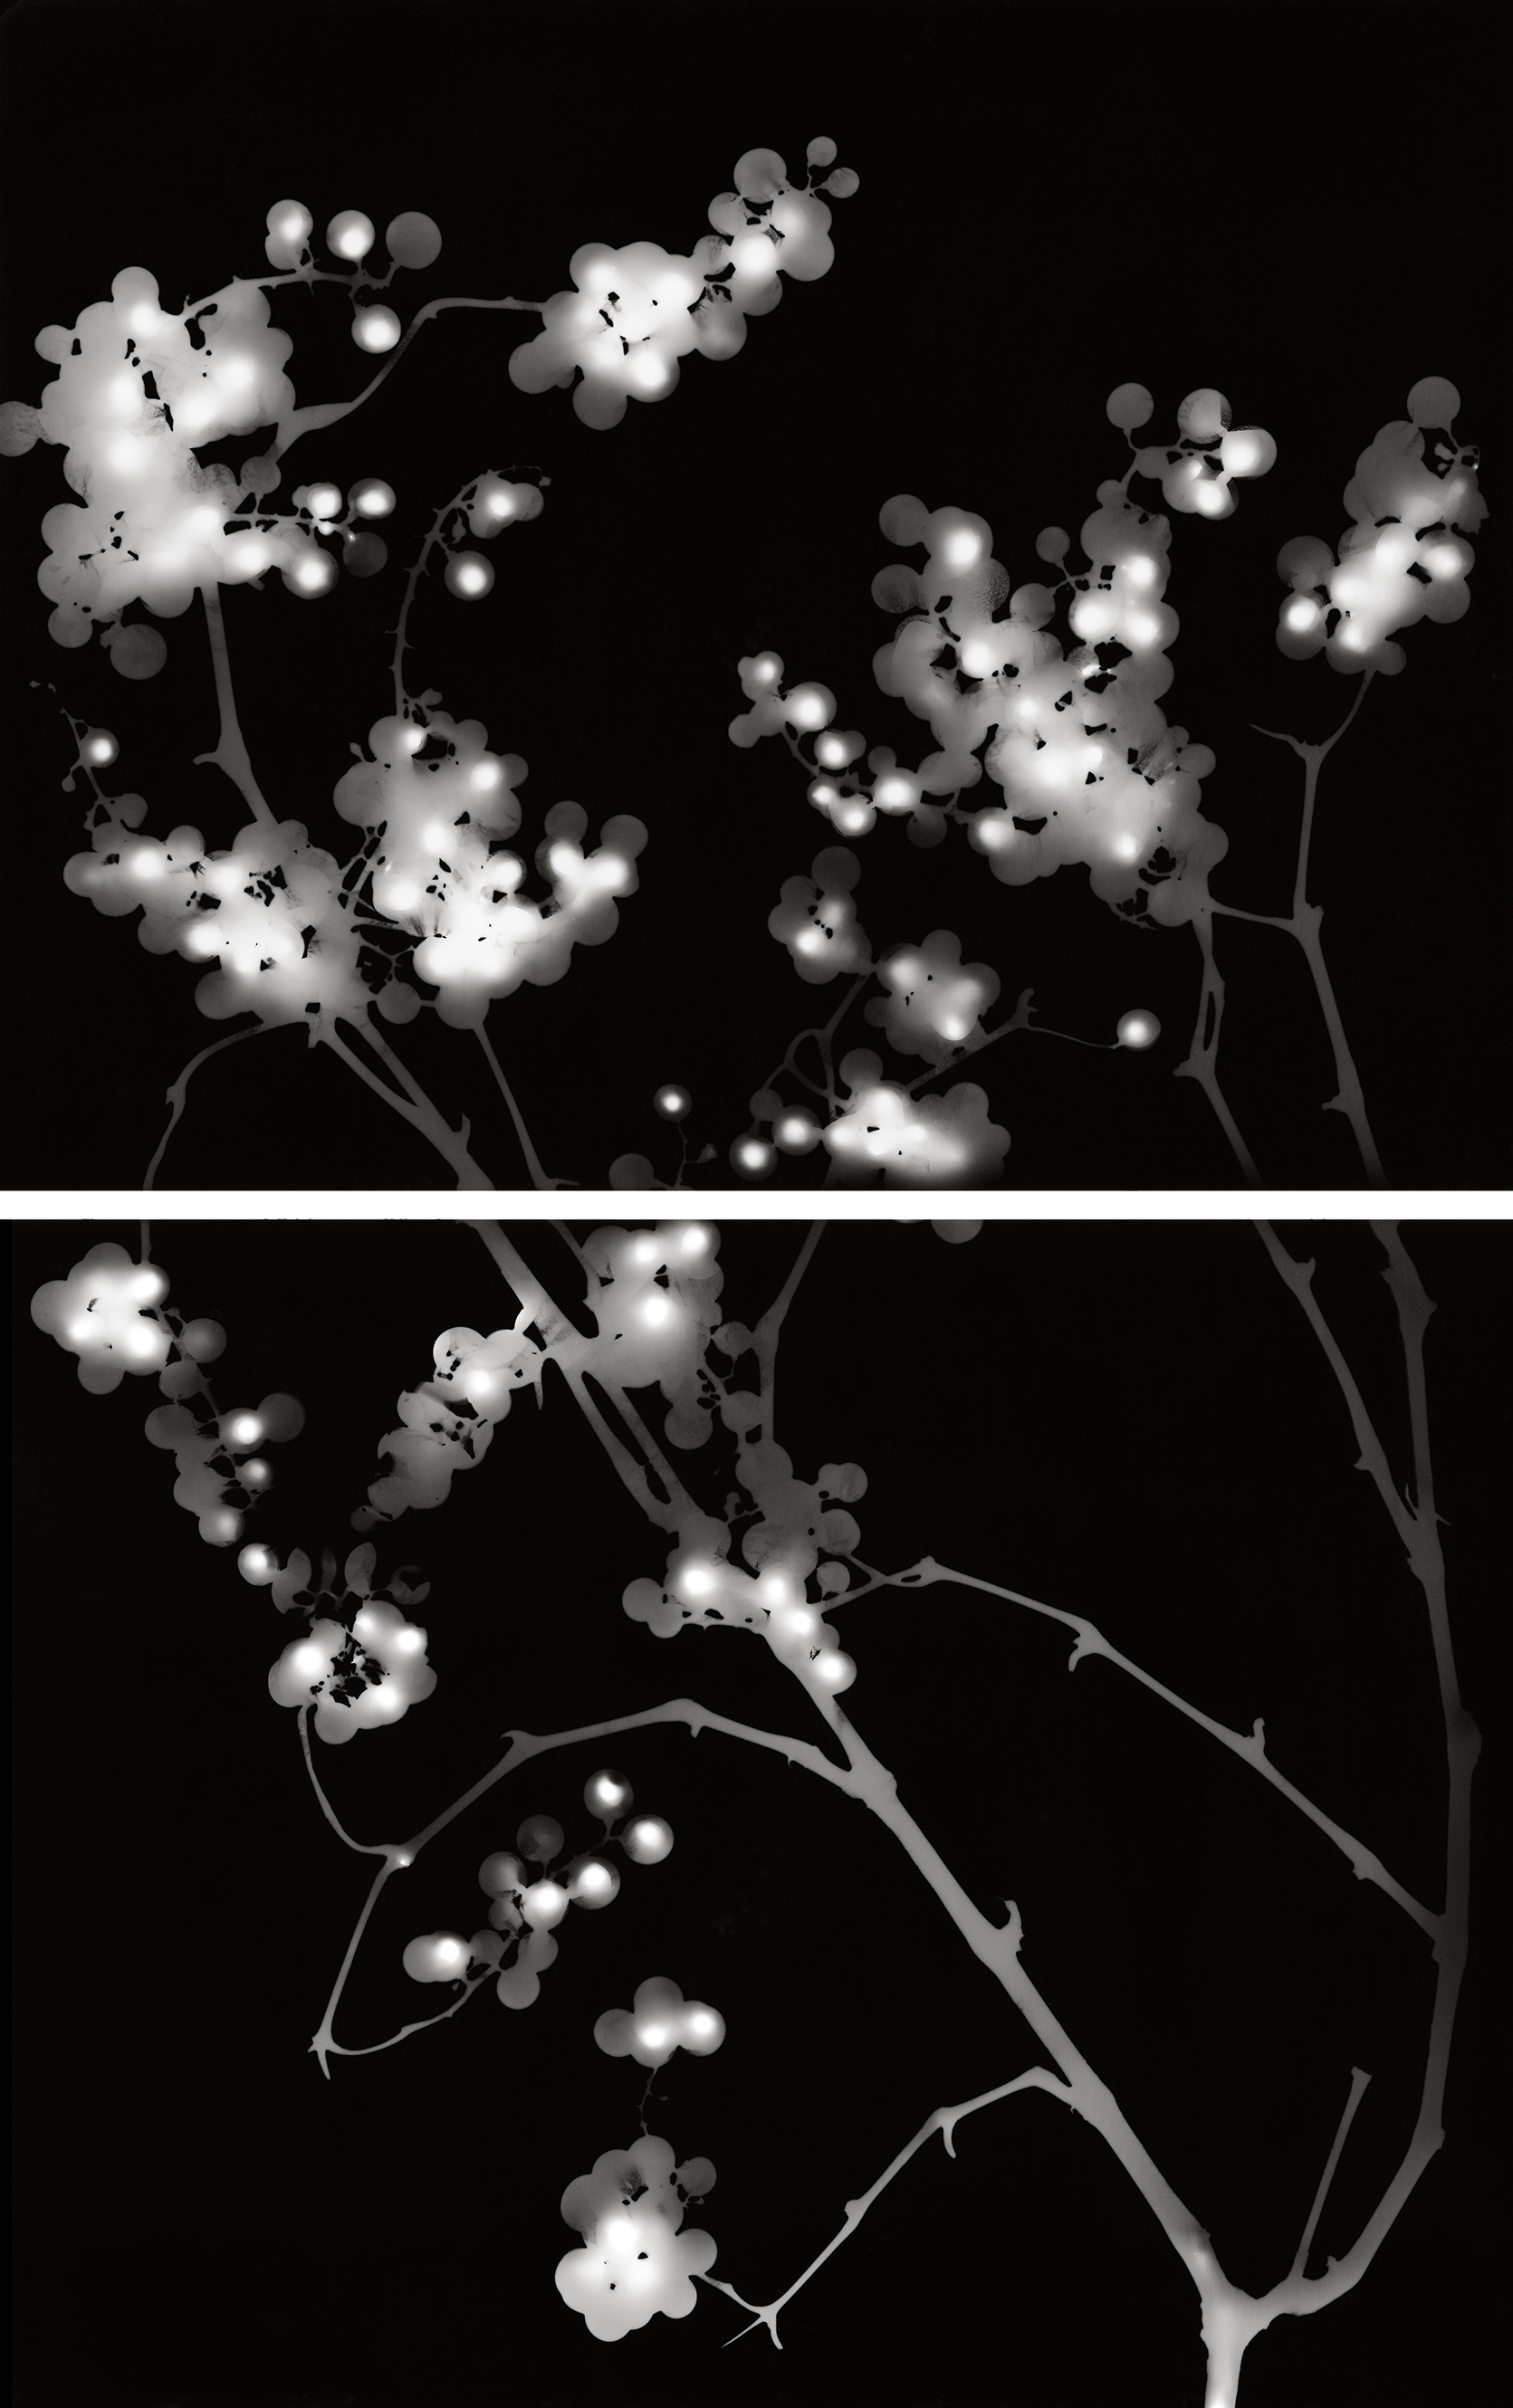 25. Untitled (specular diptych #20). 2015. Photogram.